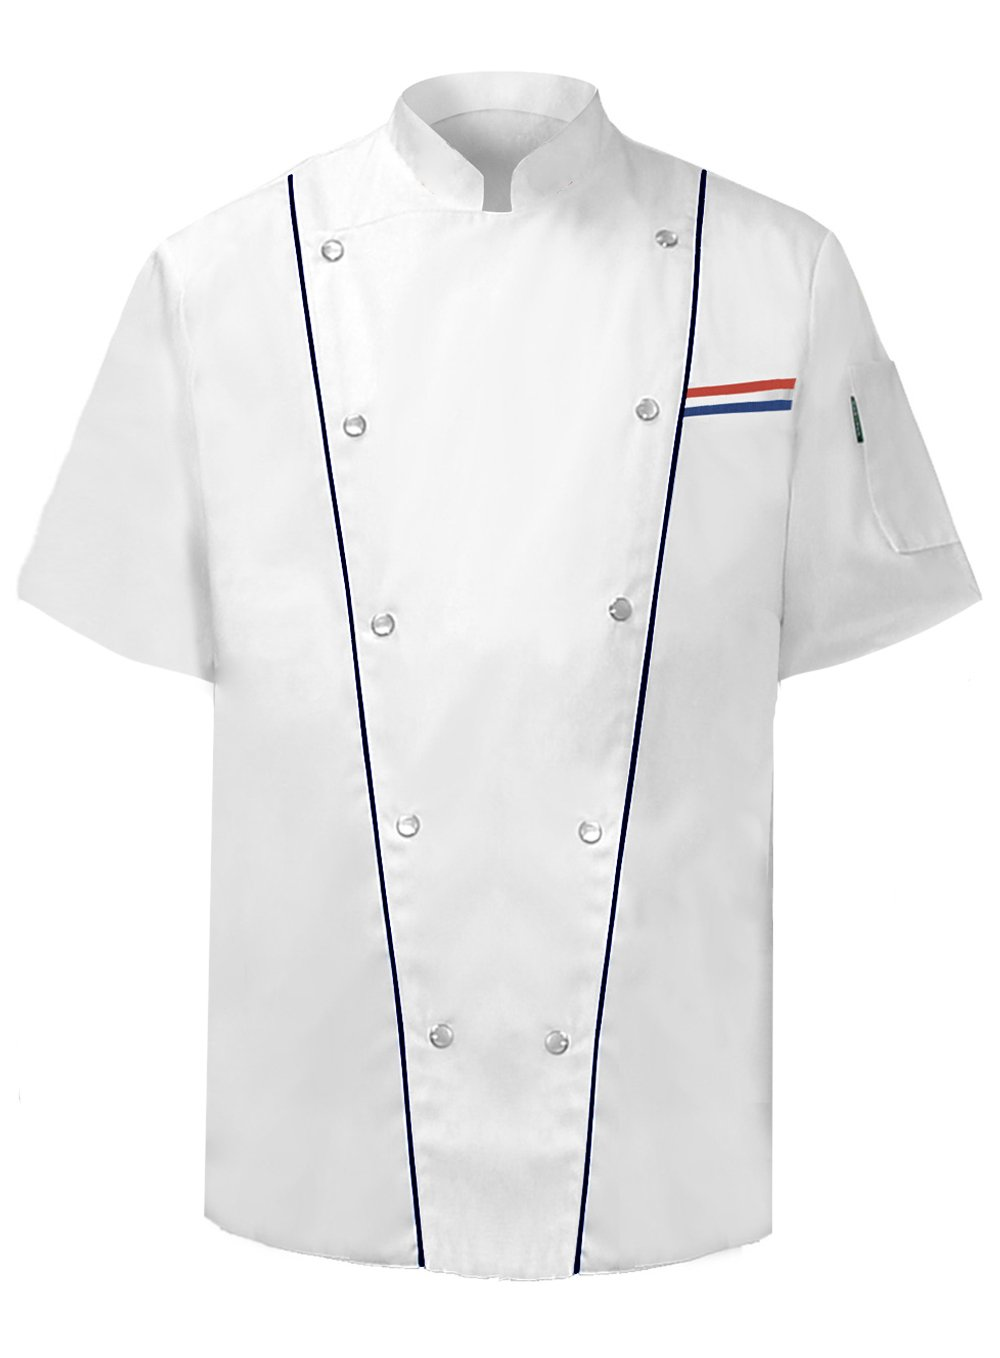 Newchef Fashion Executive Chef Jacket Male Short Sleeves L White